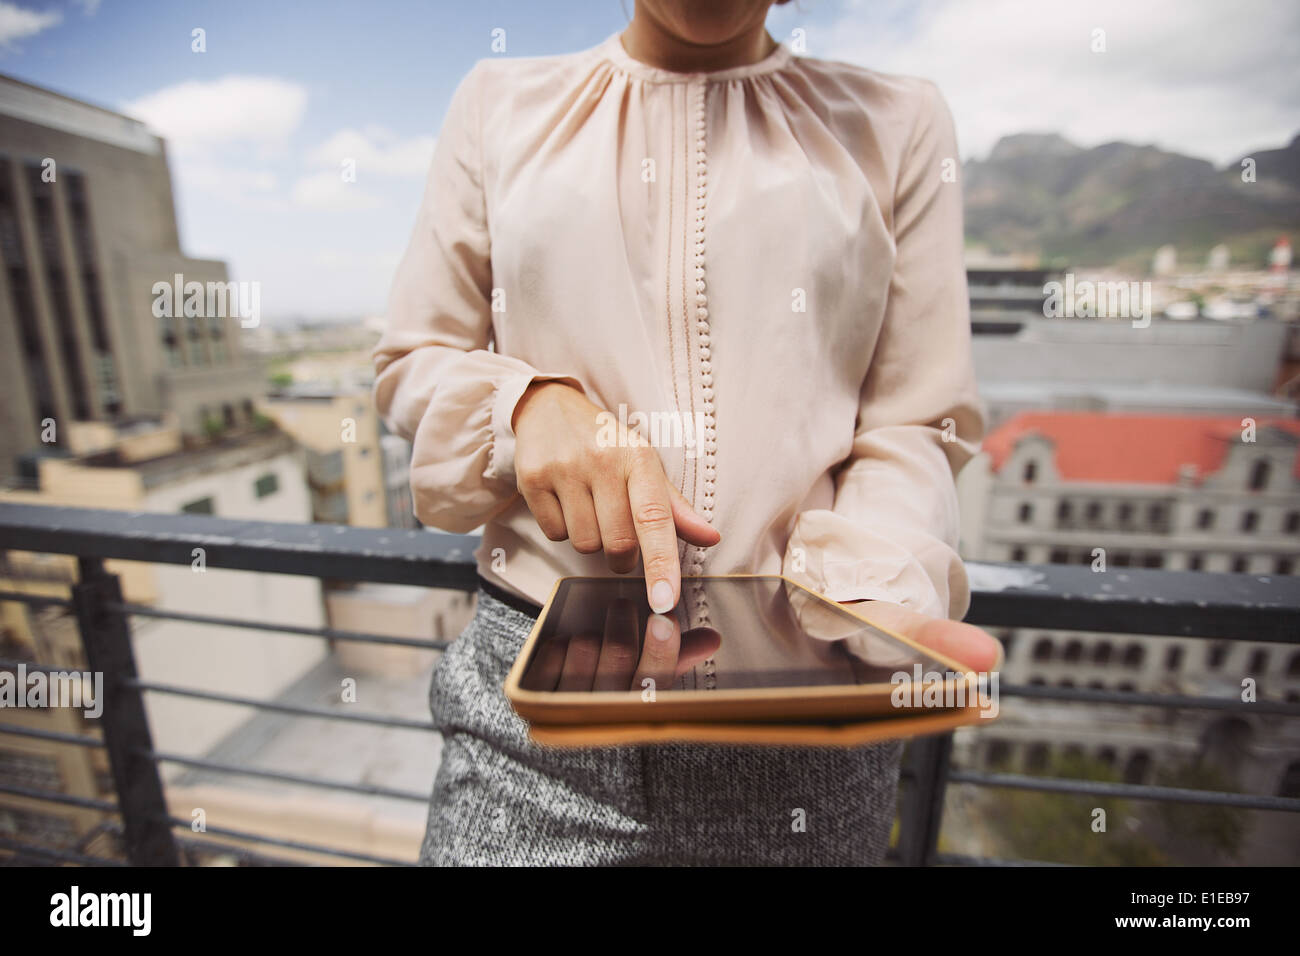 Cropped image of young woman working on tablet PC. Close up image of female standing on balcony using digital tablet. - Stock Image